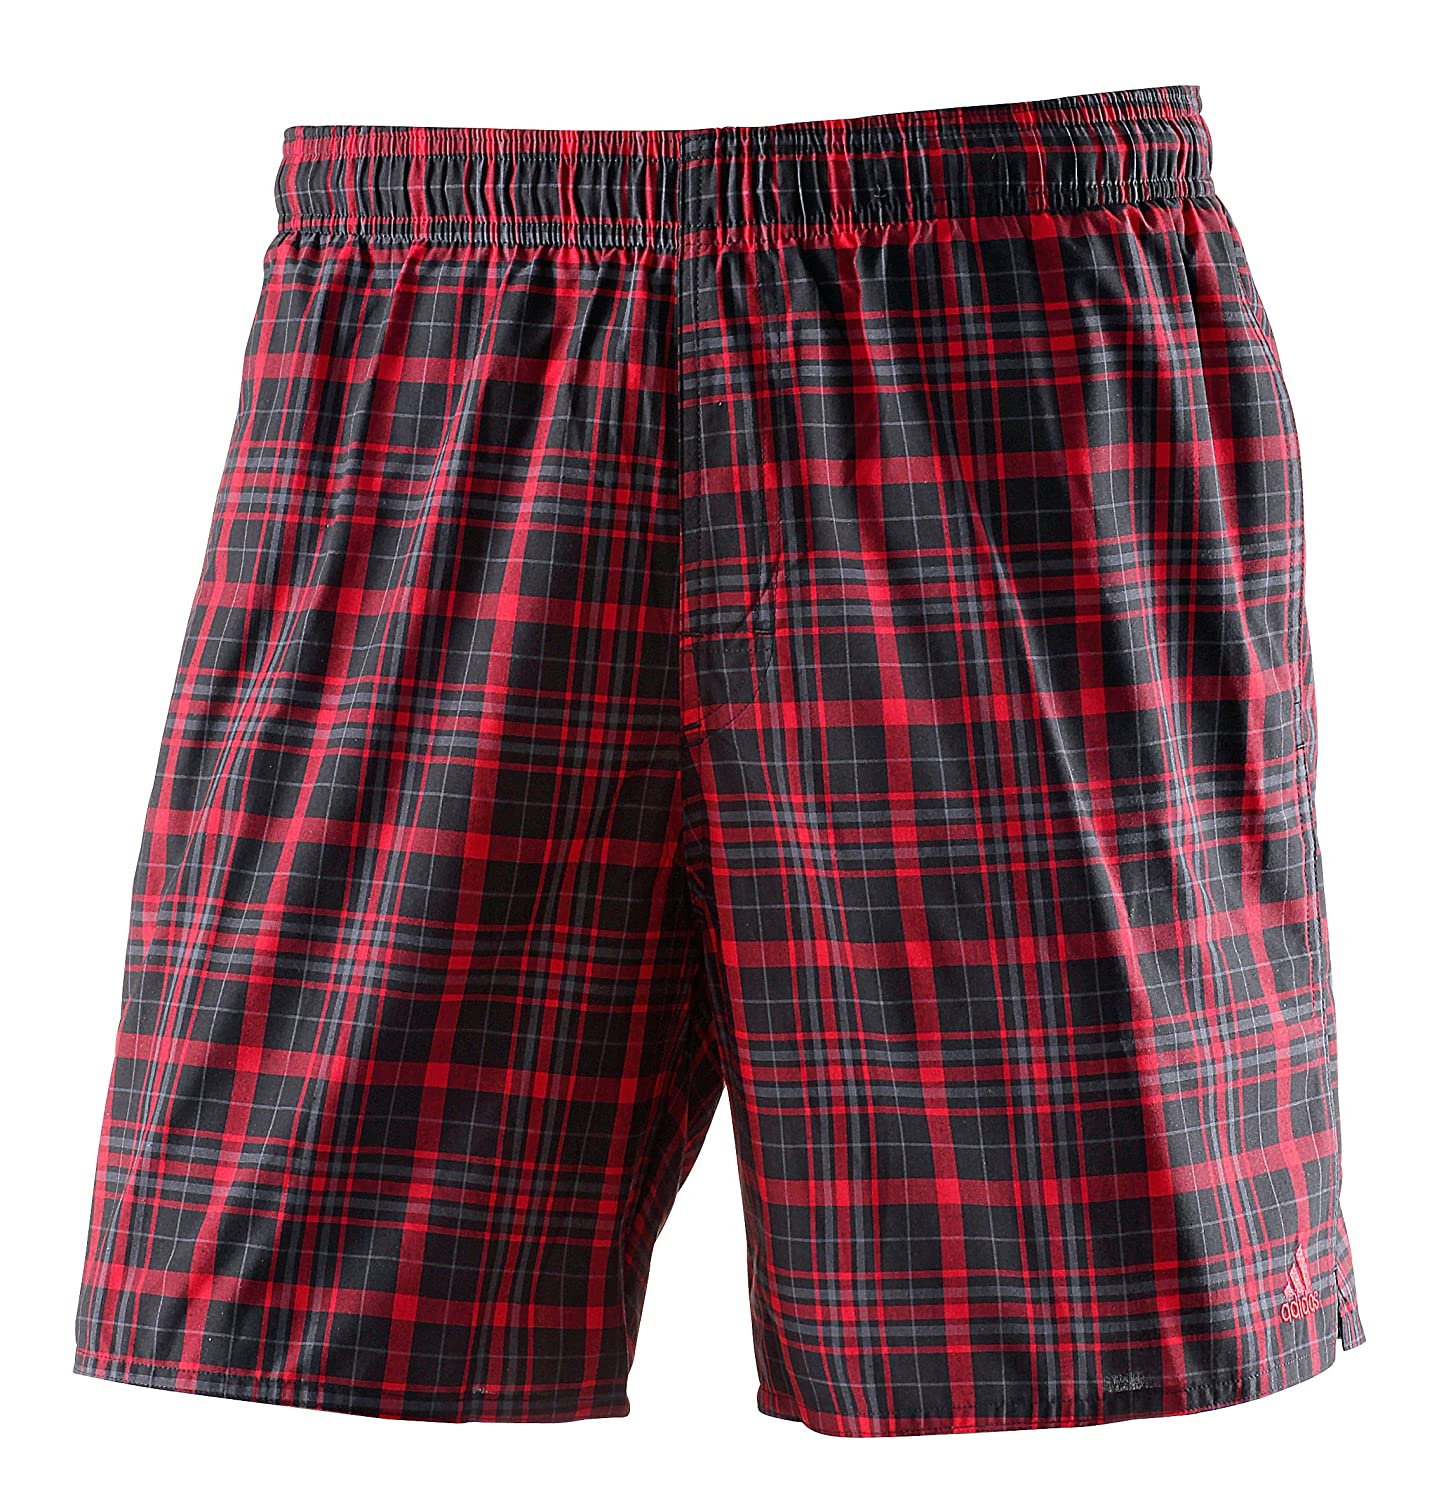 adidas Men's Yarn Dye Check Sporty Length Bathing Shorts